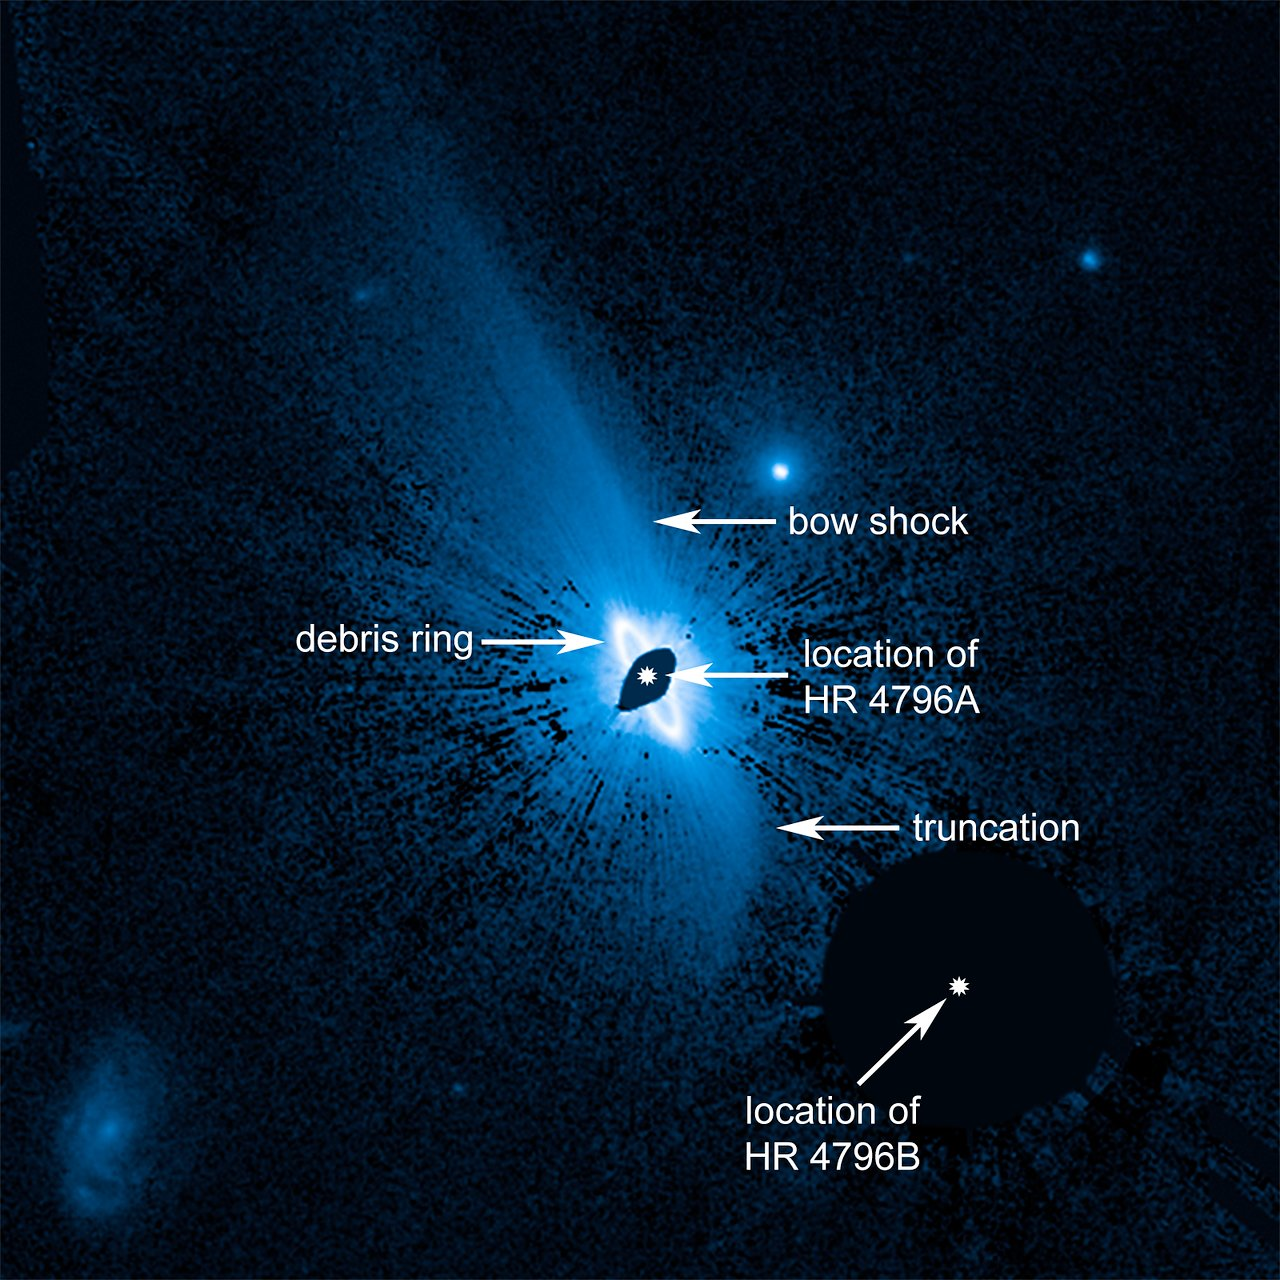 Huge system of dusty material enveloping the young star HR 4796A